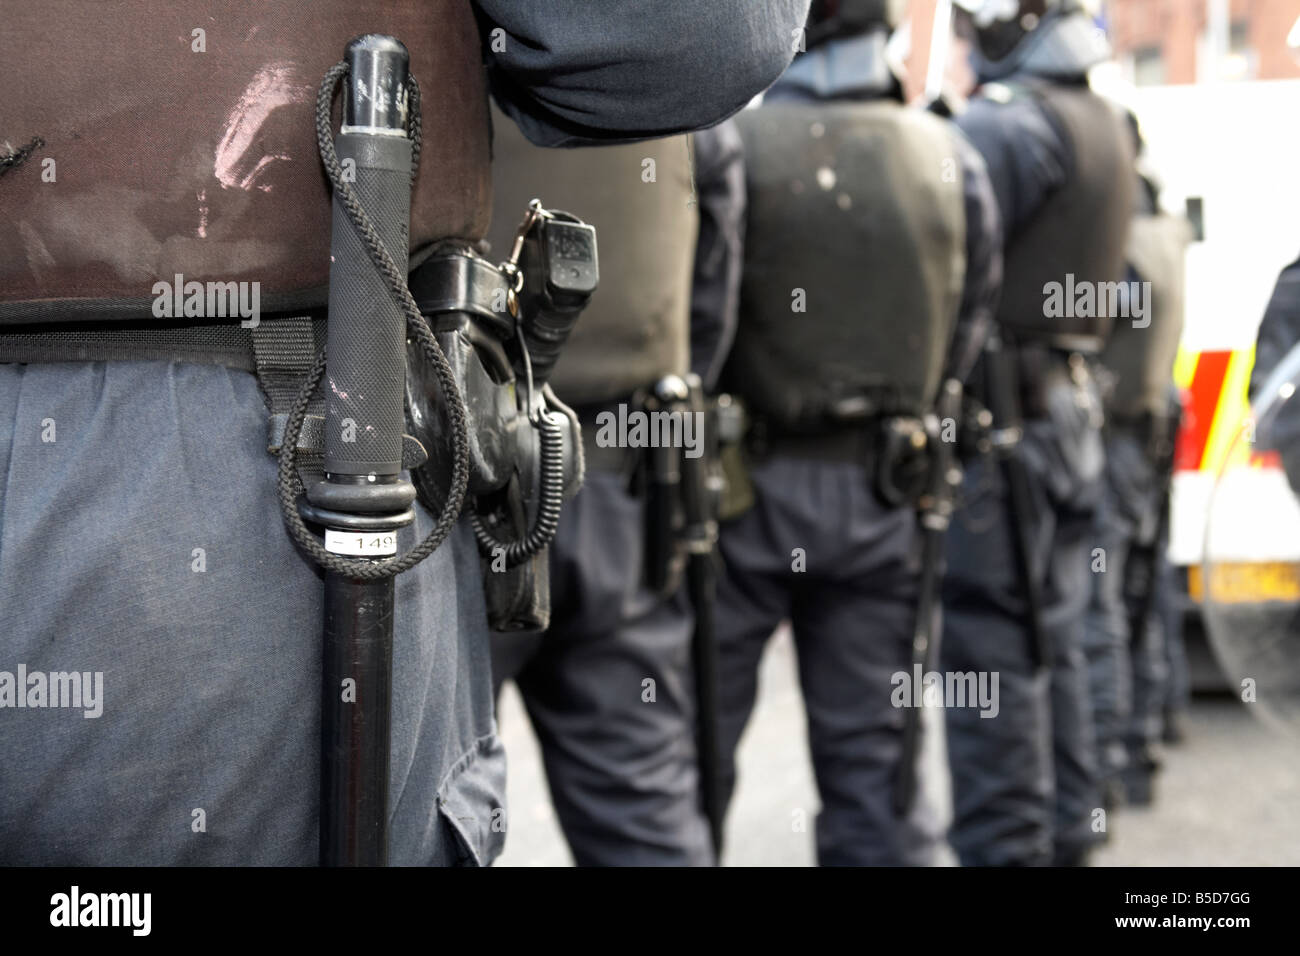 row of PSNI Police Service of Northern Ireland riot squad officers wearing batons sidearms and riot gear - Stock Image